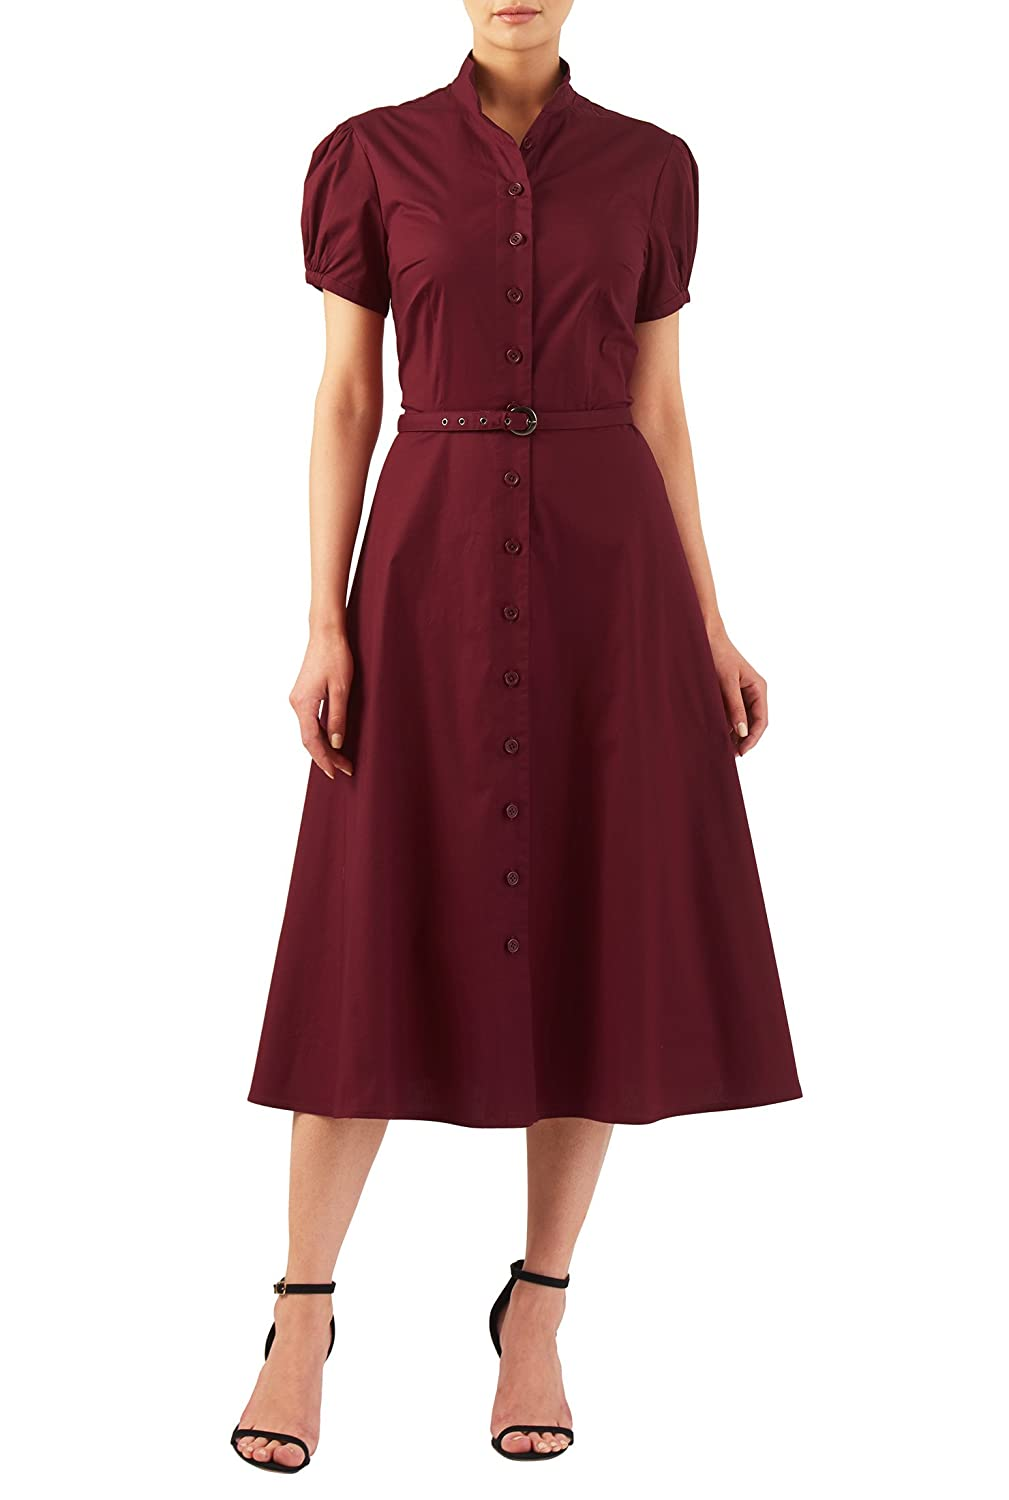 Vintage Inspired Clothing Stores Puff sleeve stretch poplin midi shirtdress $61.95 AT vintagedancer.com